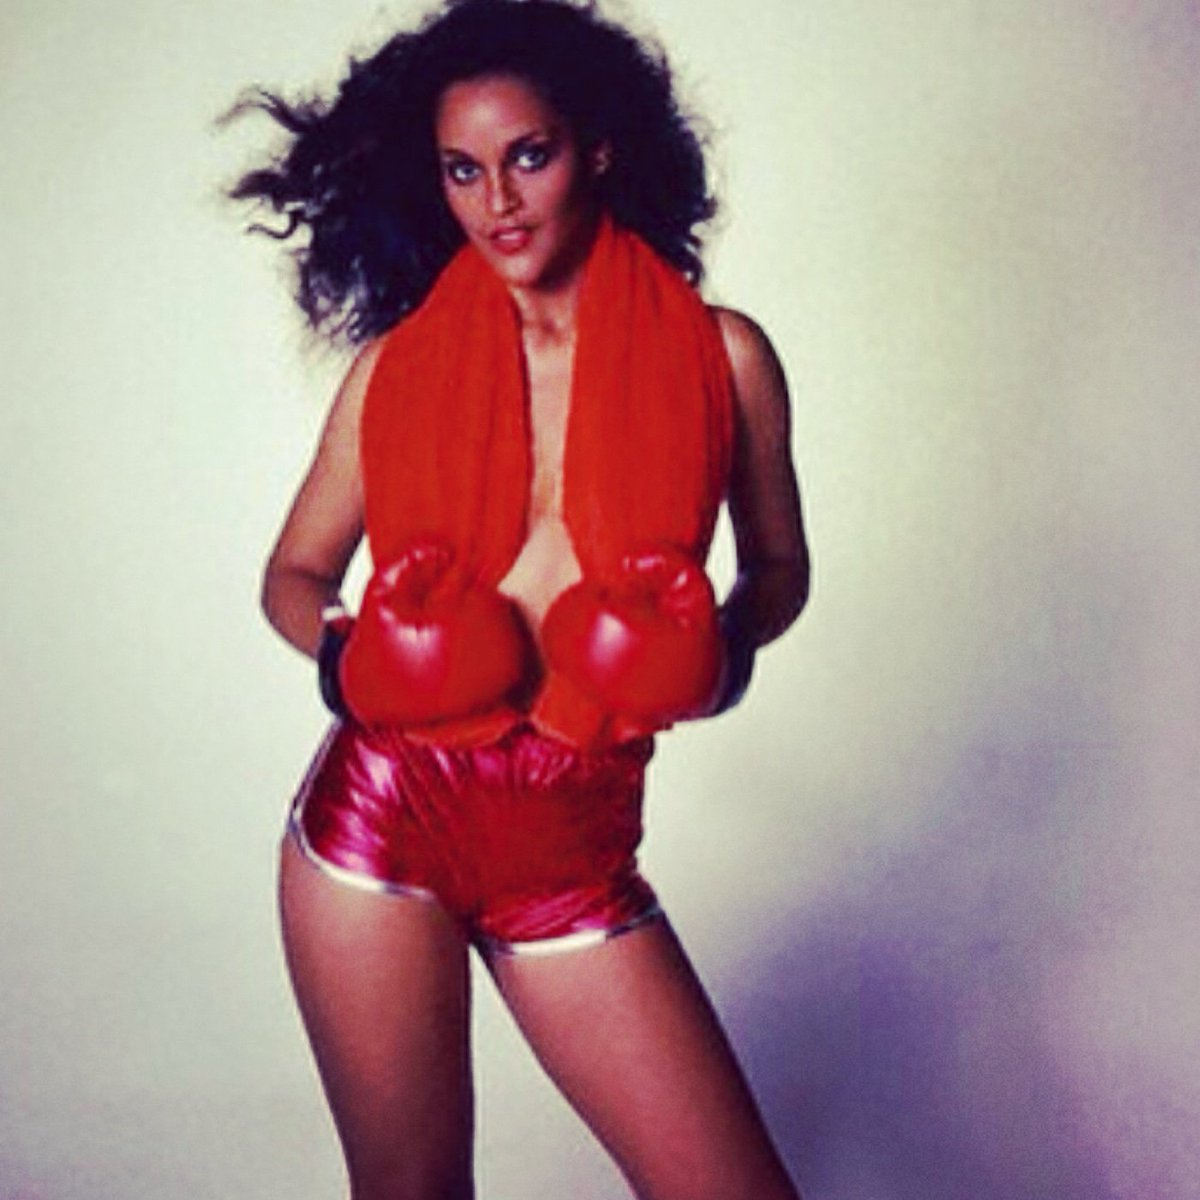 Now here's a 🔥 Throwback ❗💋 #TBT #ThrowBackThursday #JayneKennedy #Muse #Fashion #Beauty #Style